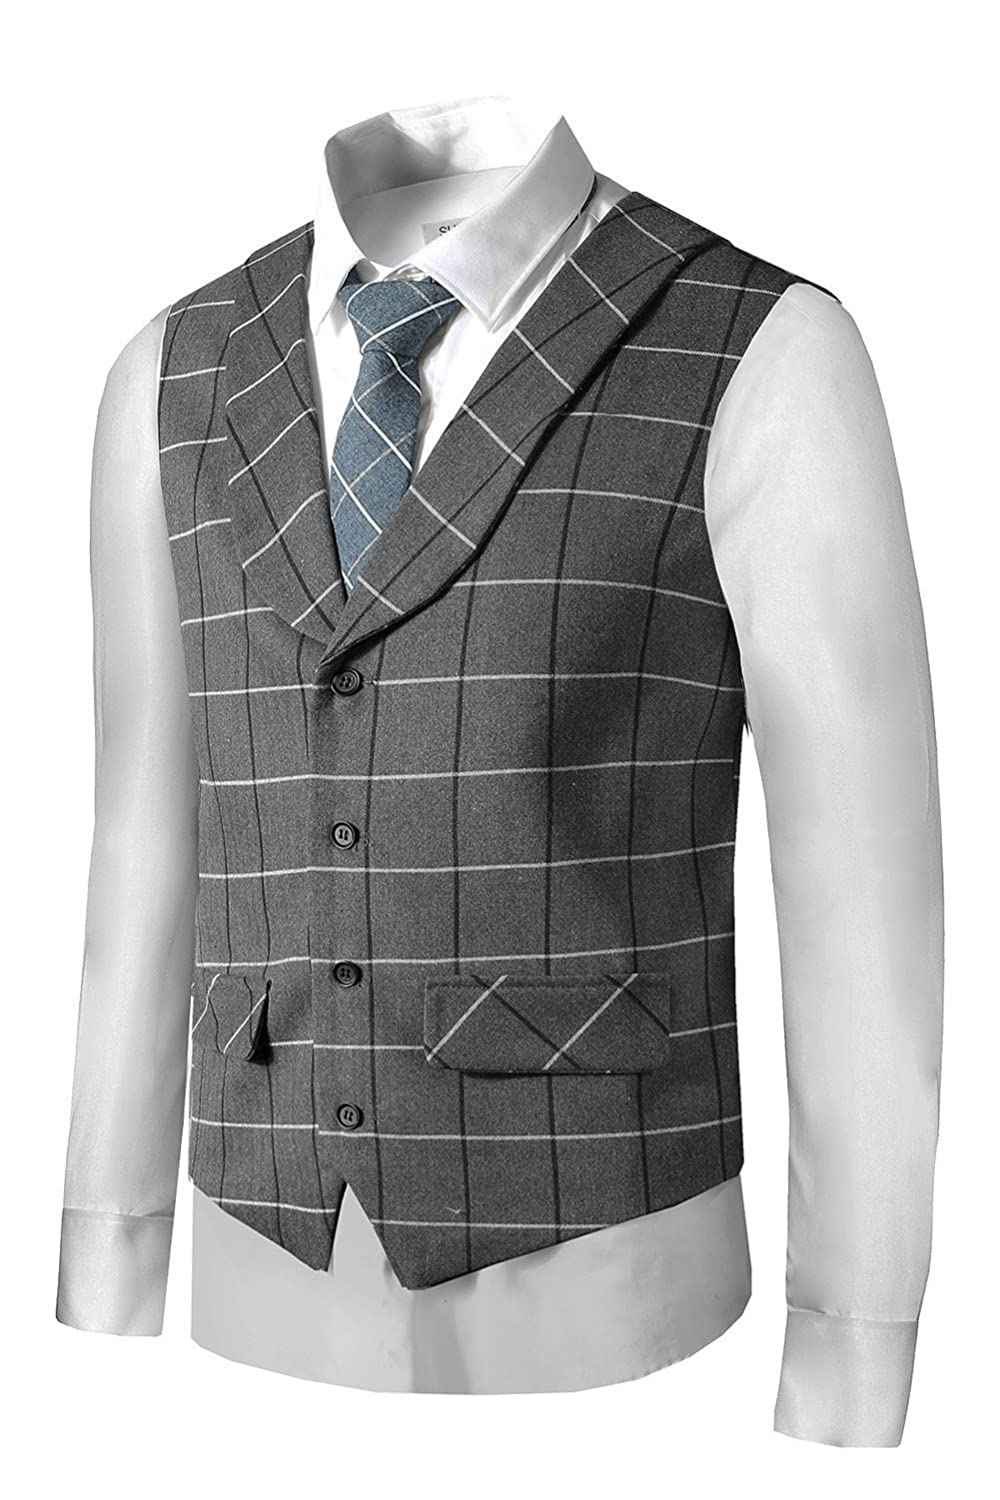 Steampunk Clothing- Men's Hanayome Mens Gentleman Top Design Casual Waistcoat Business Suit Vest VS17 $28.50 AT vintagedancer.com